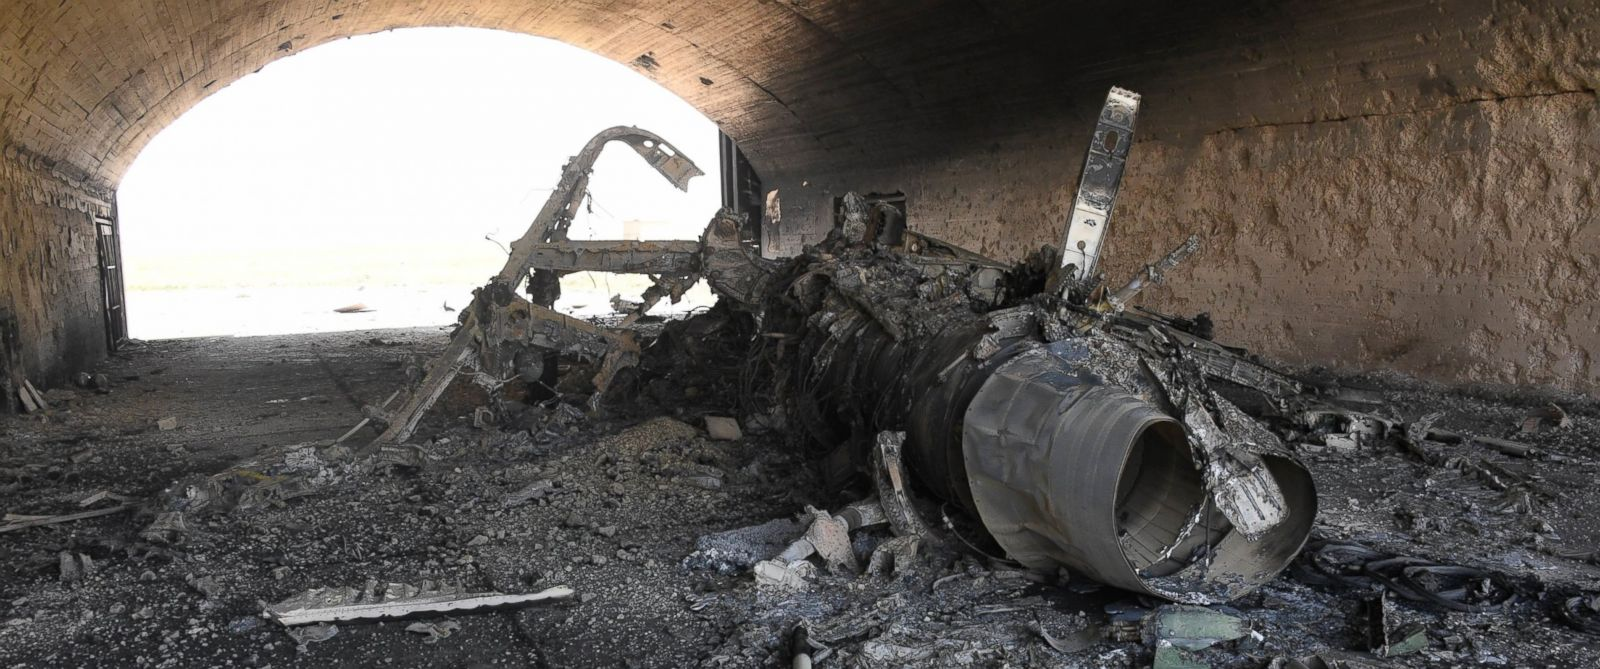 PHOTO: In a photo released by the Russian state-owned news outlet, Sputnik, the body of the remains of a plane burned following the U.S. missile attack on an air base in Syria, April 7, 2017.